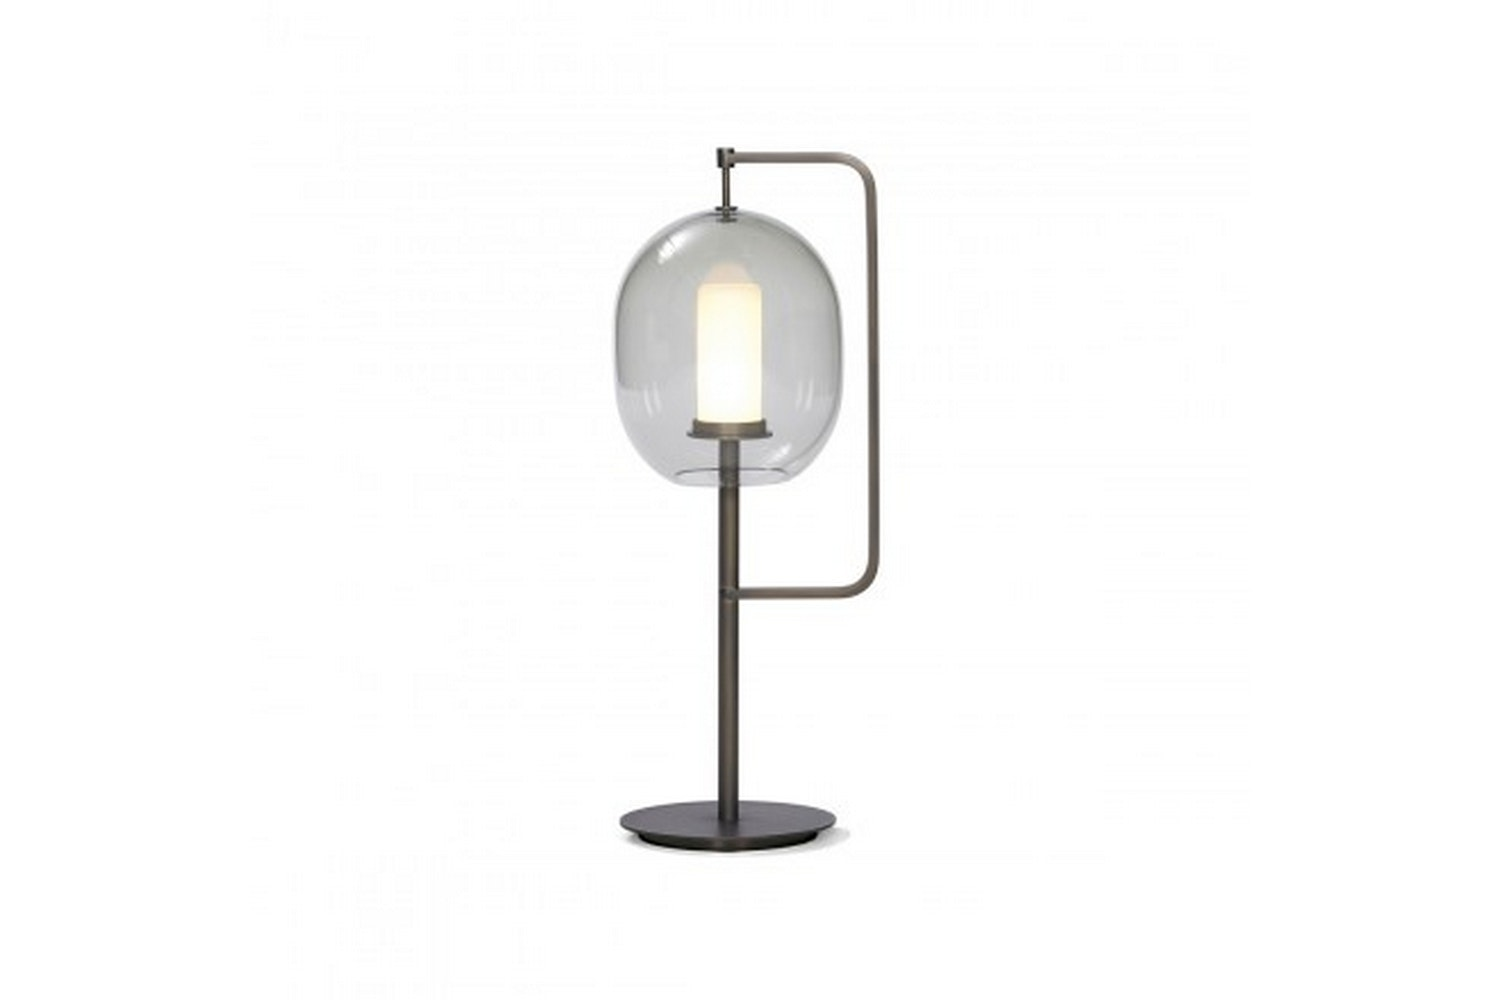 Lantern Light Table Lamp by Neri&Hu for ClassiCon